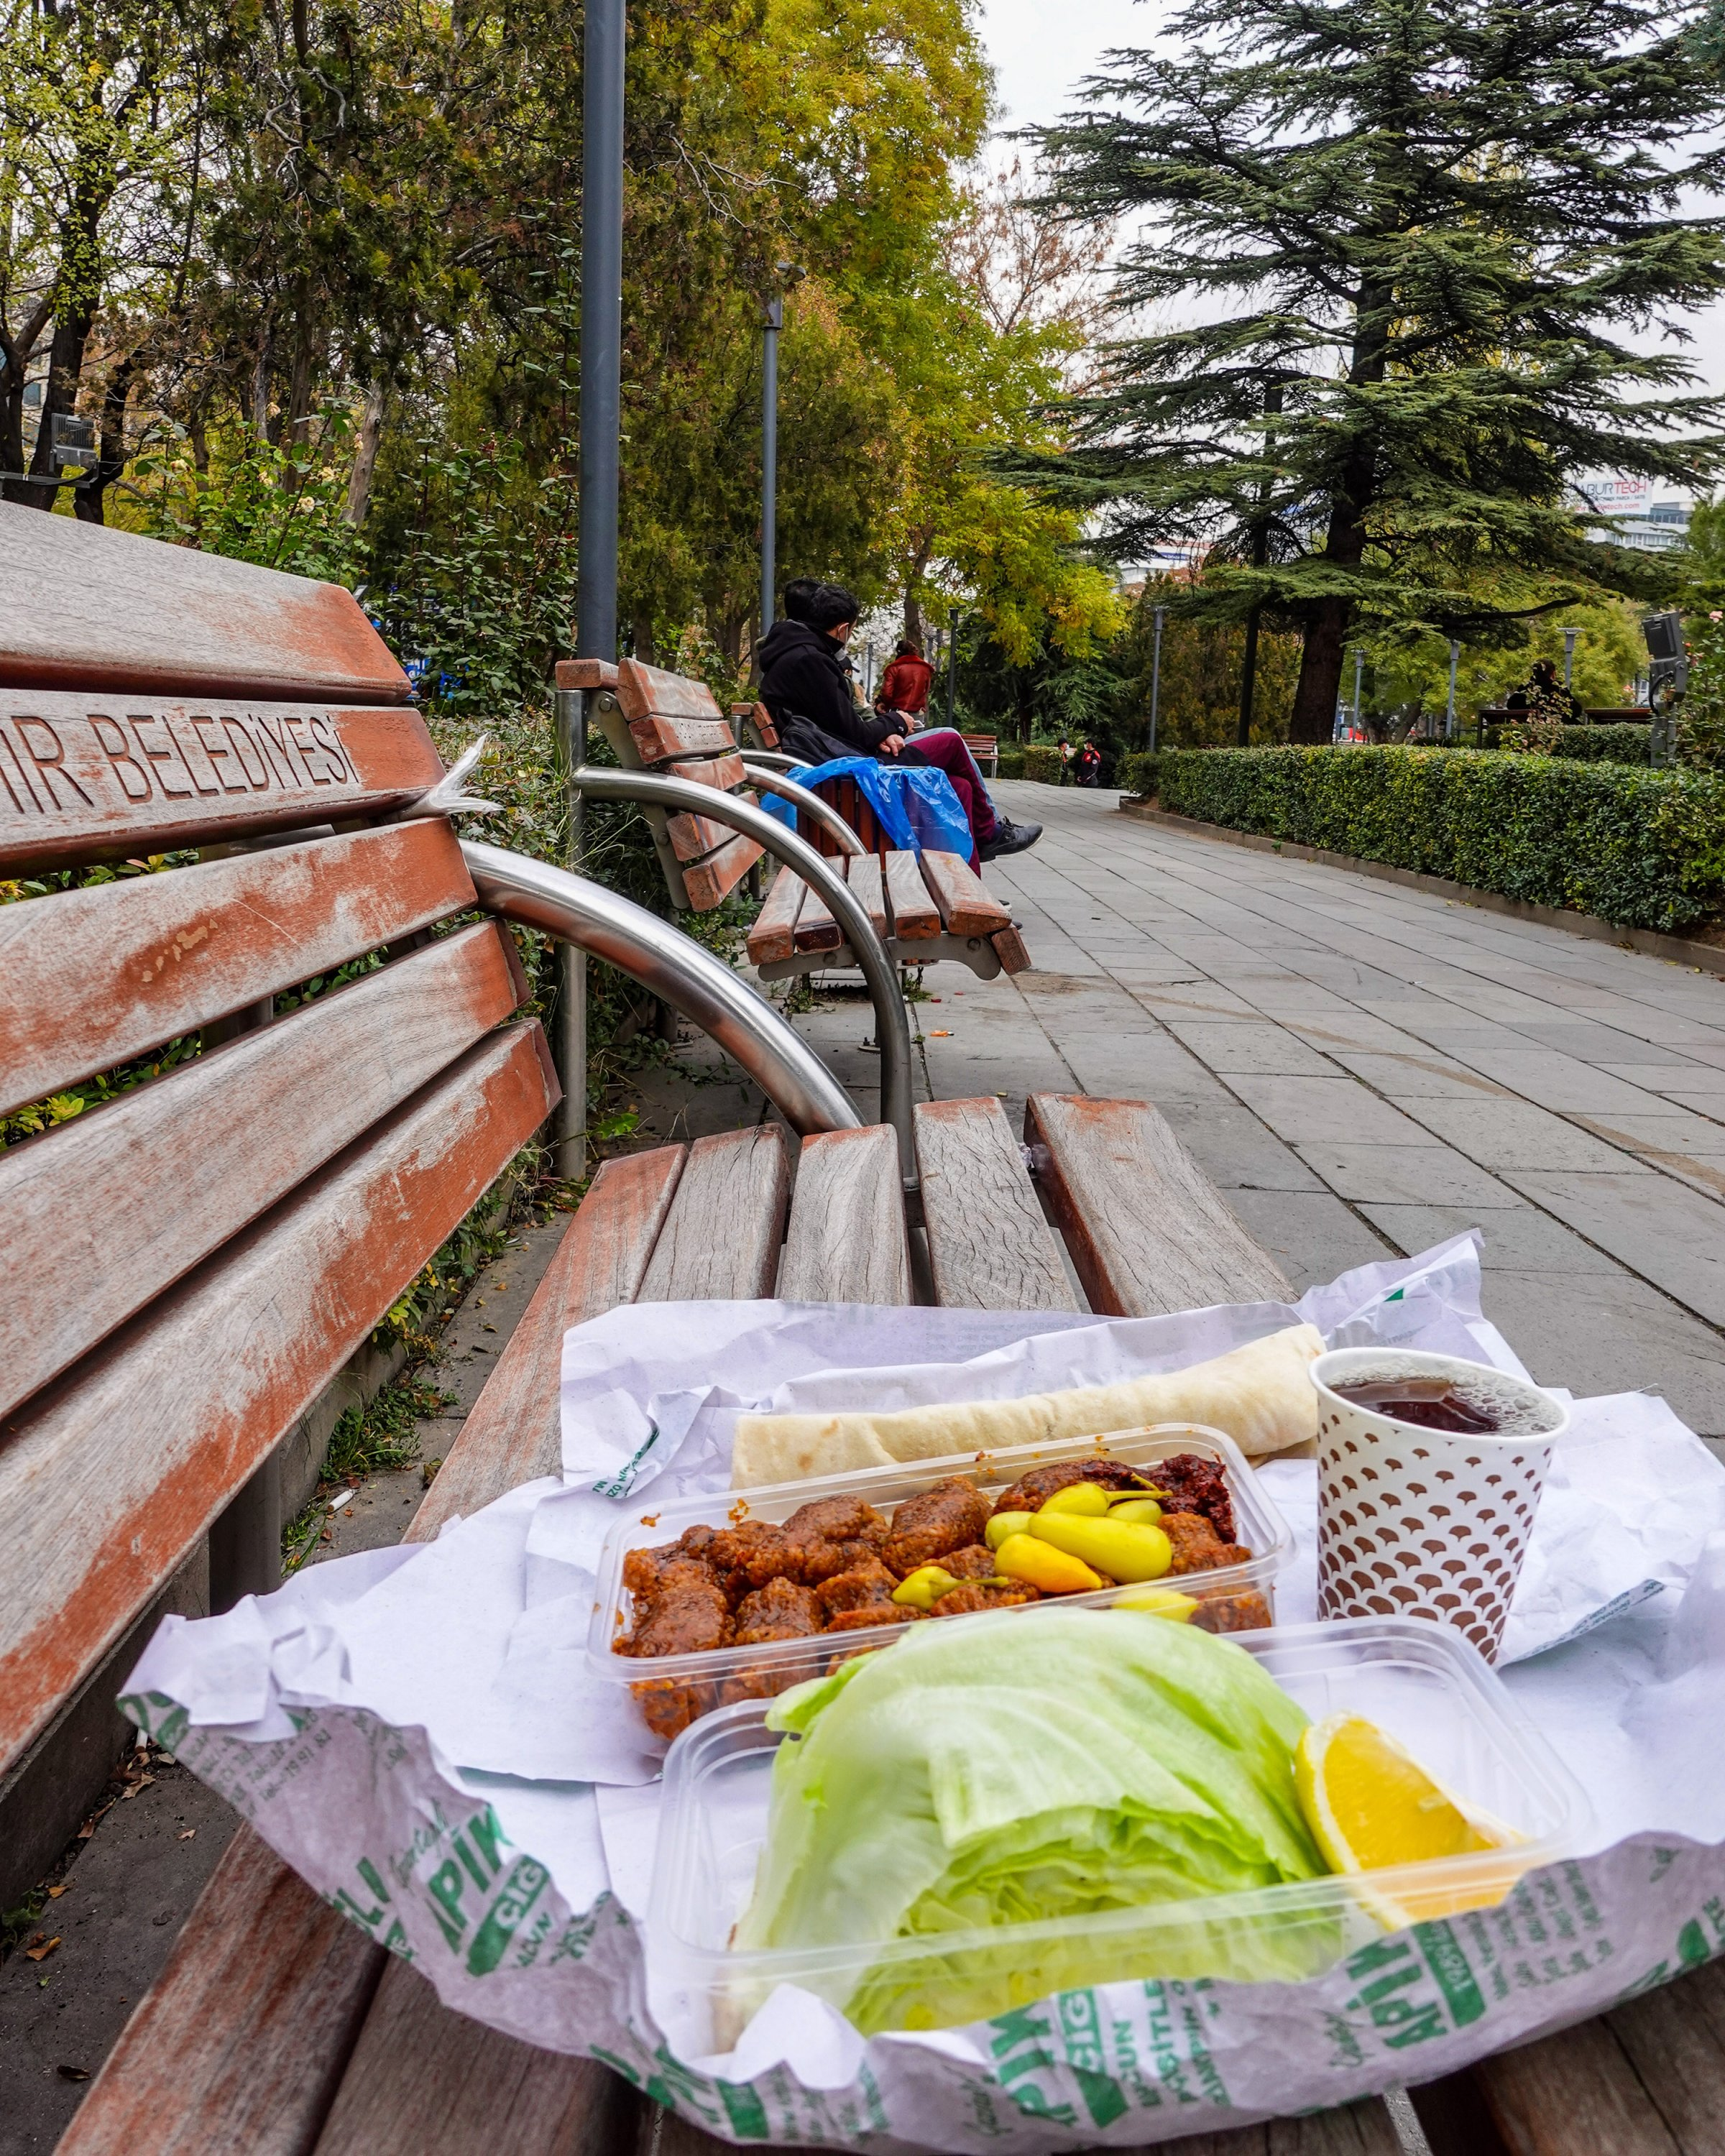 A çiğ köfte picnic at Güvenpark. (Photo by Argun Konuk)